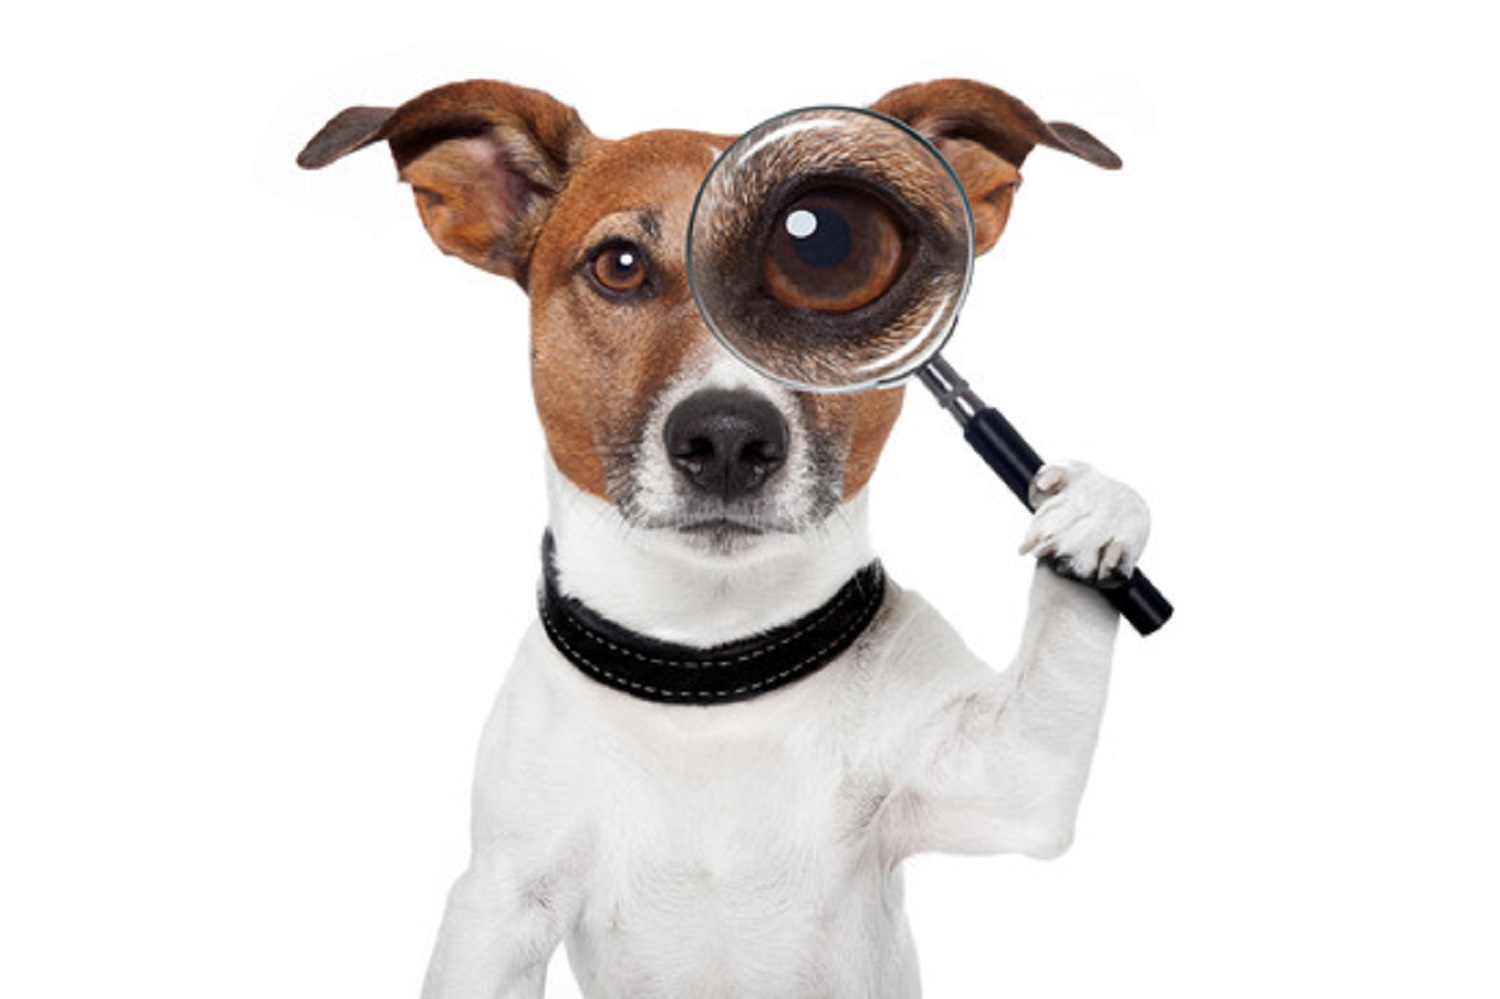 Copy of searching dog with magnifying glass searching dog with magnifying glass